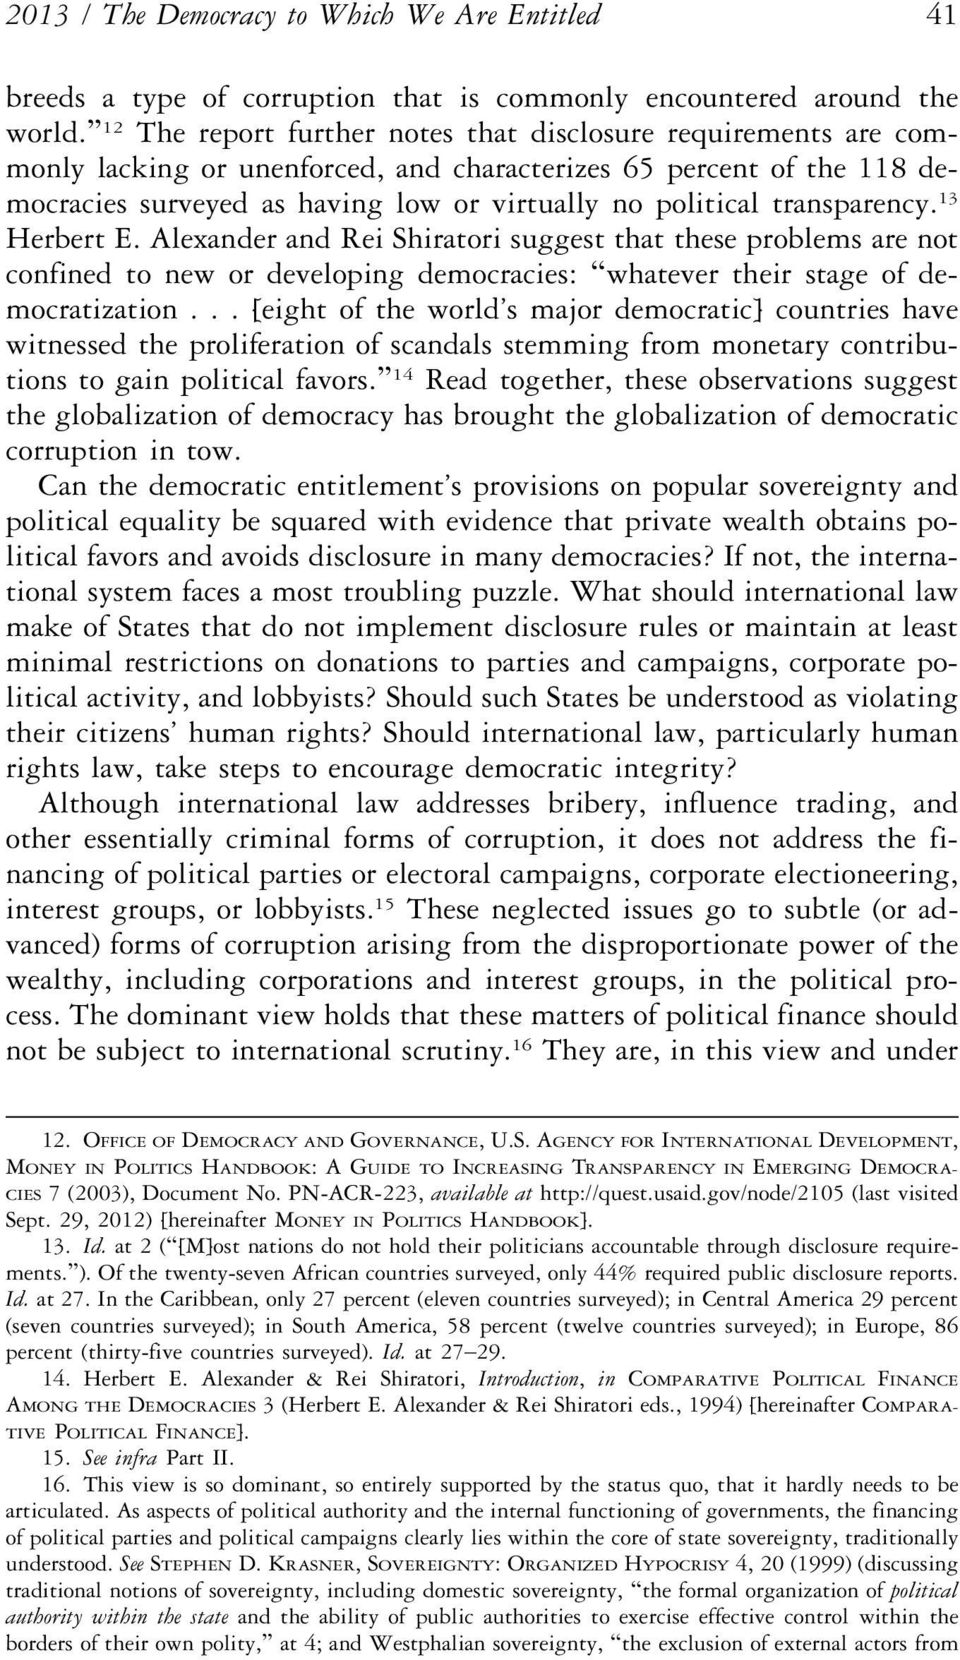 transparency. 13 Herbert E. Alexander and Rei Shiratori suggest that these problems are not confined to new or developing democracies: whatever their stage of democratization.